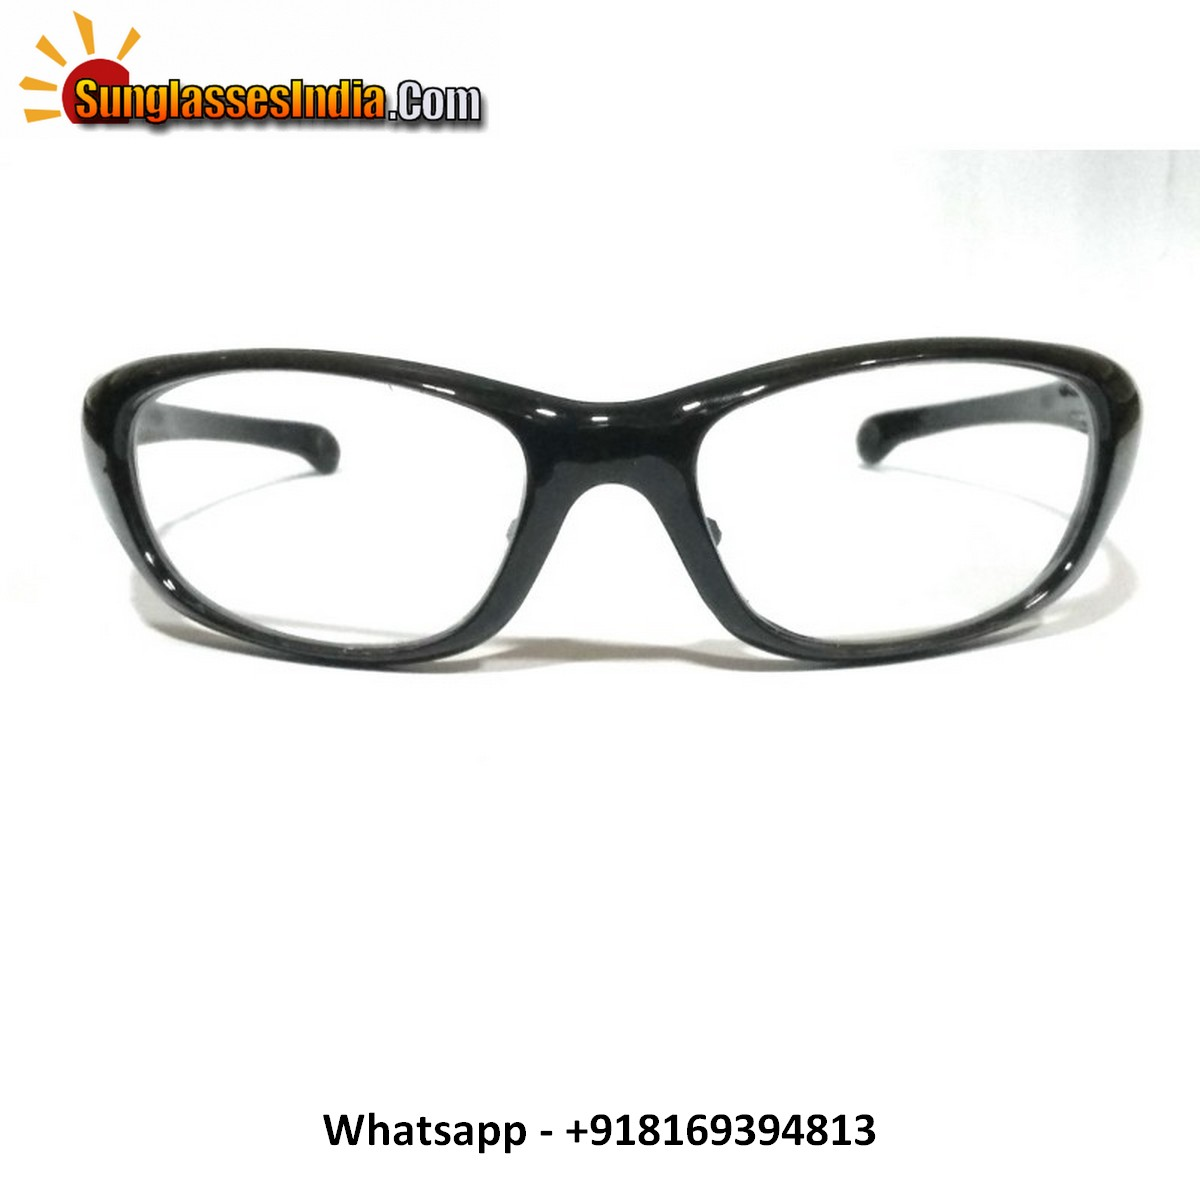 Clear Driving Sunglasses black frame with anti glare coating lenses